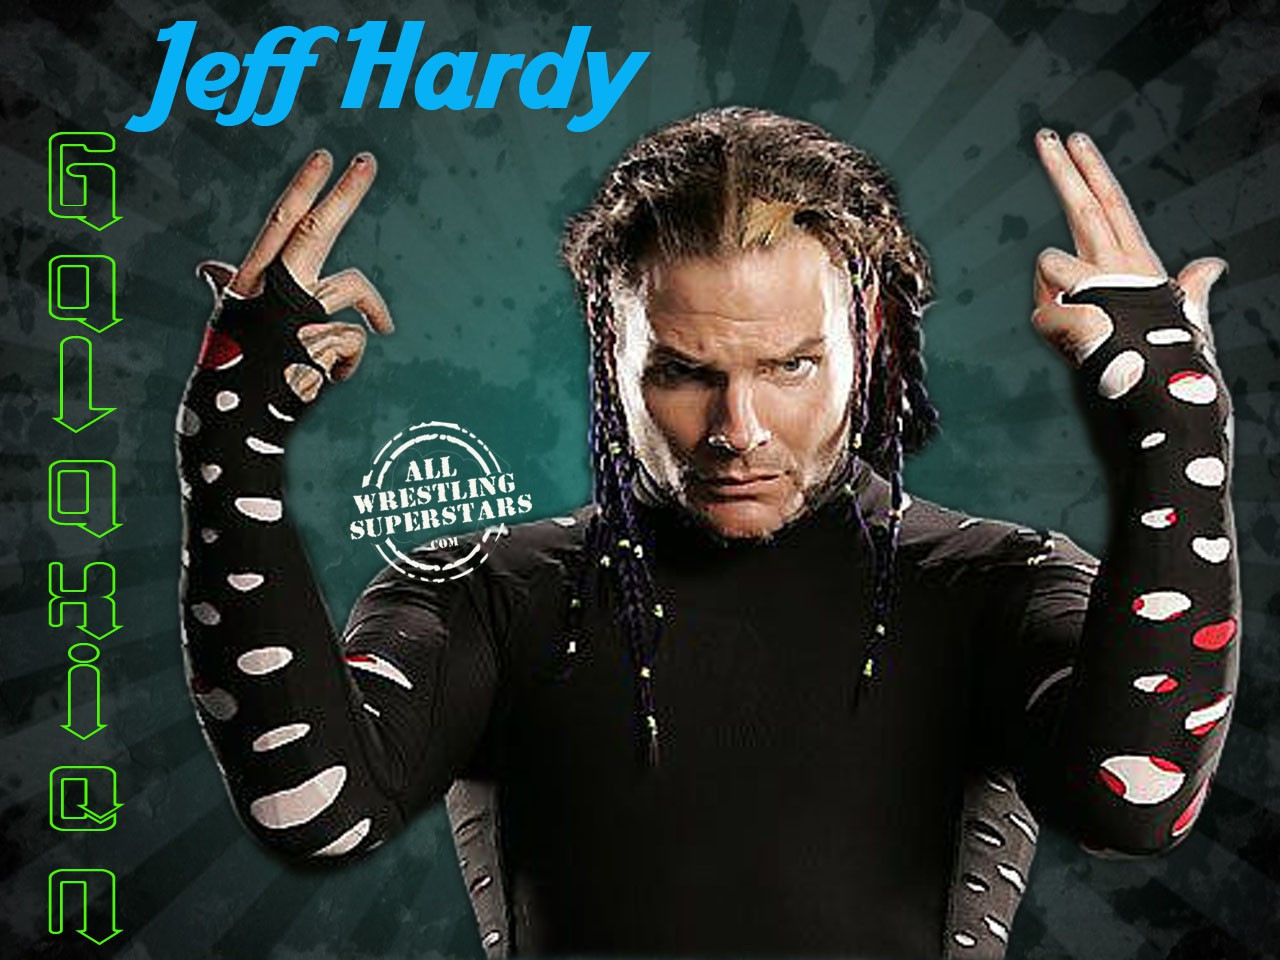 jeff hardy wallpaper hd desktop